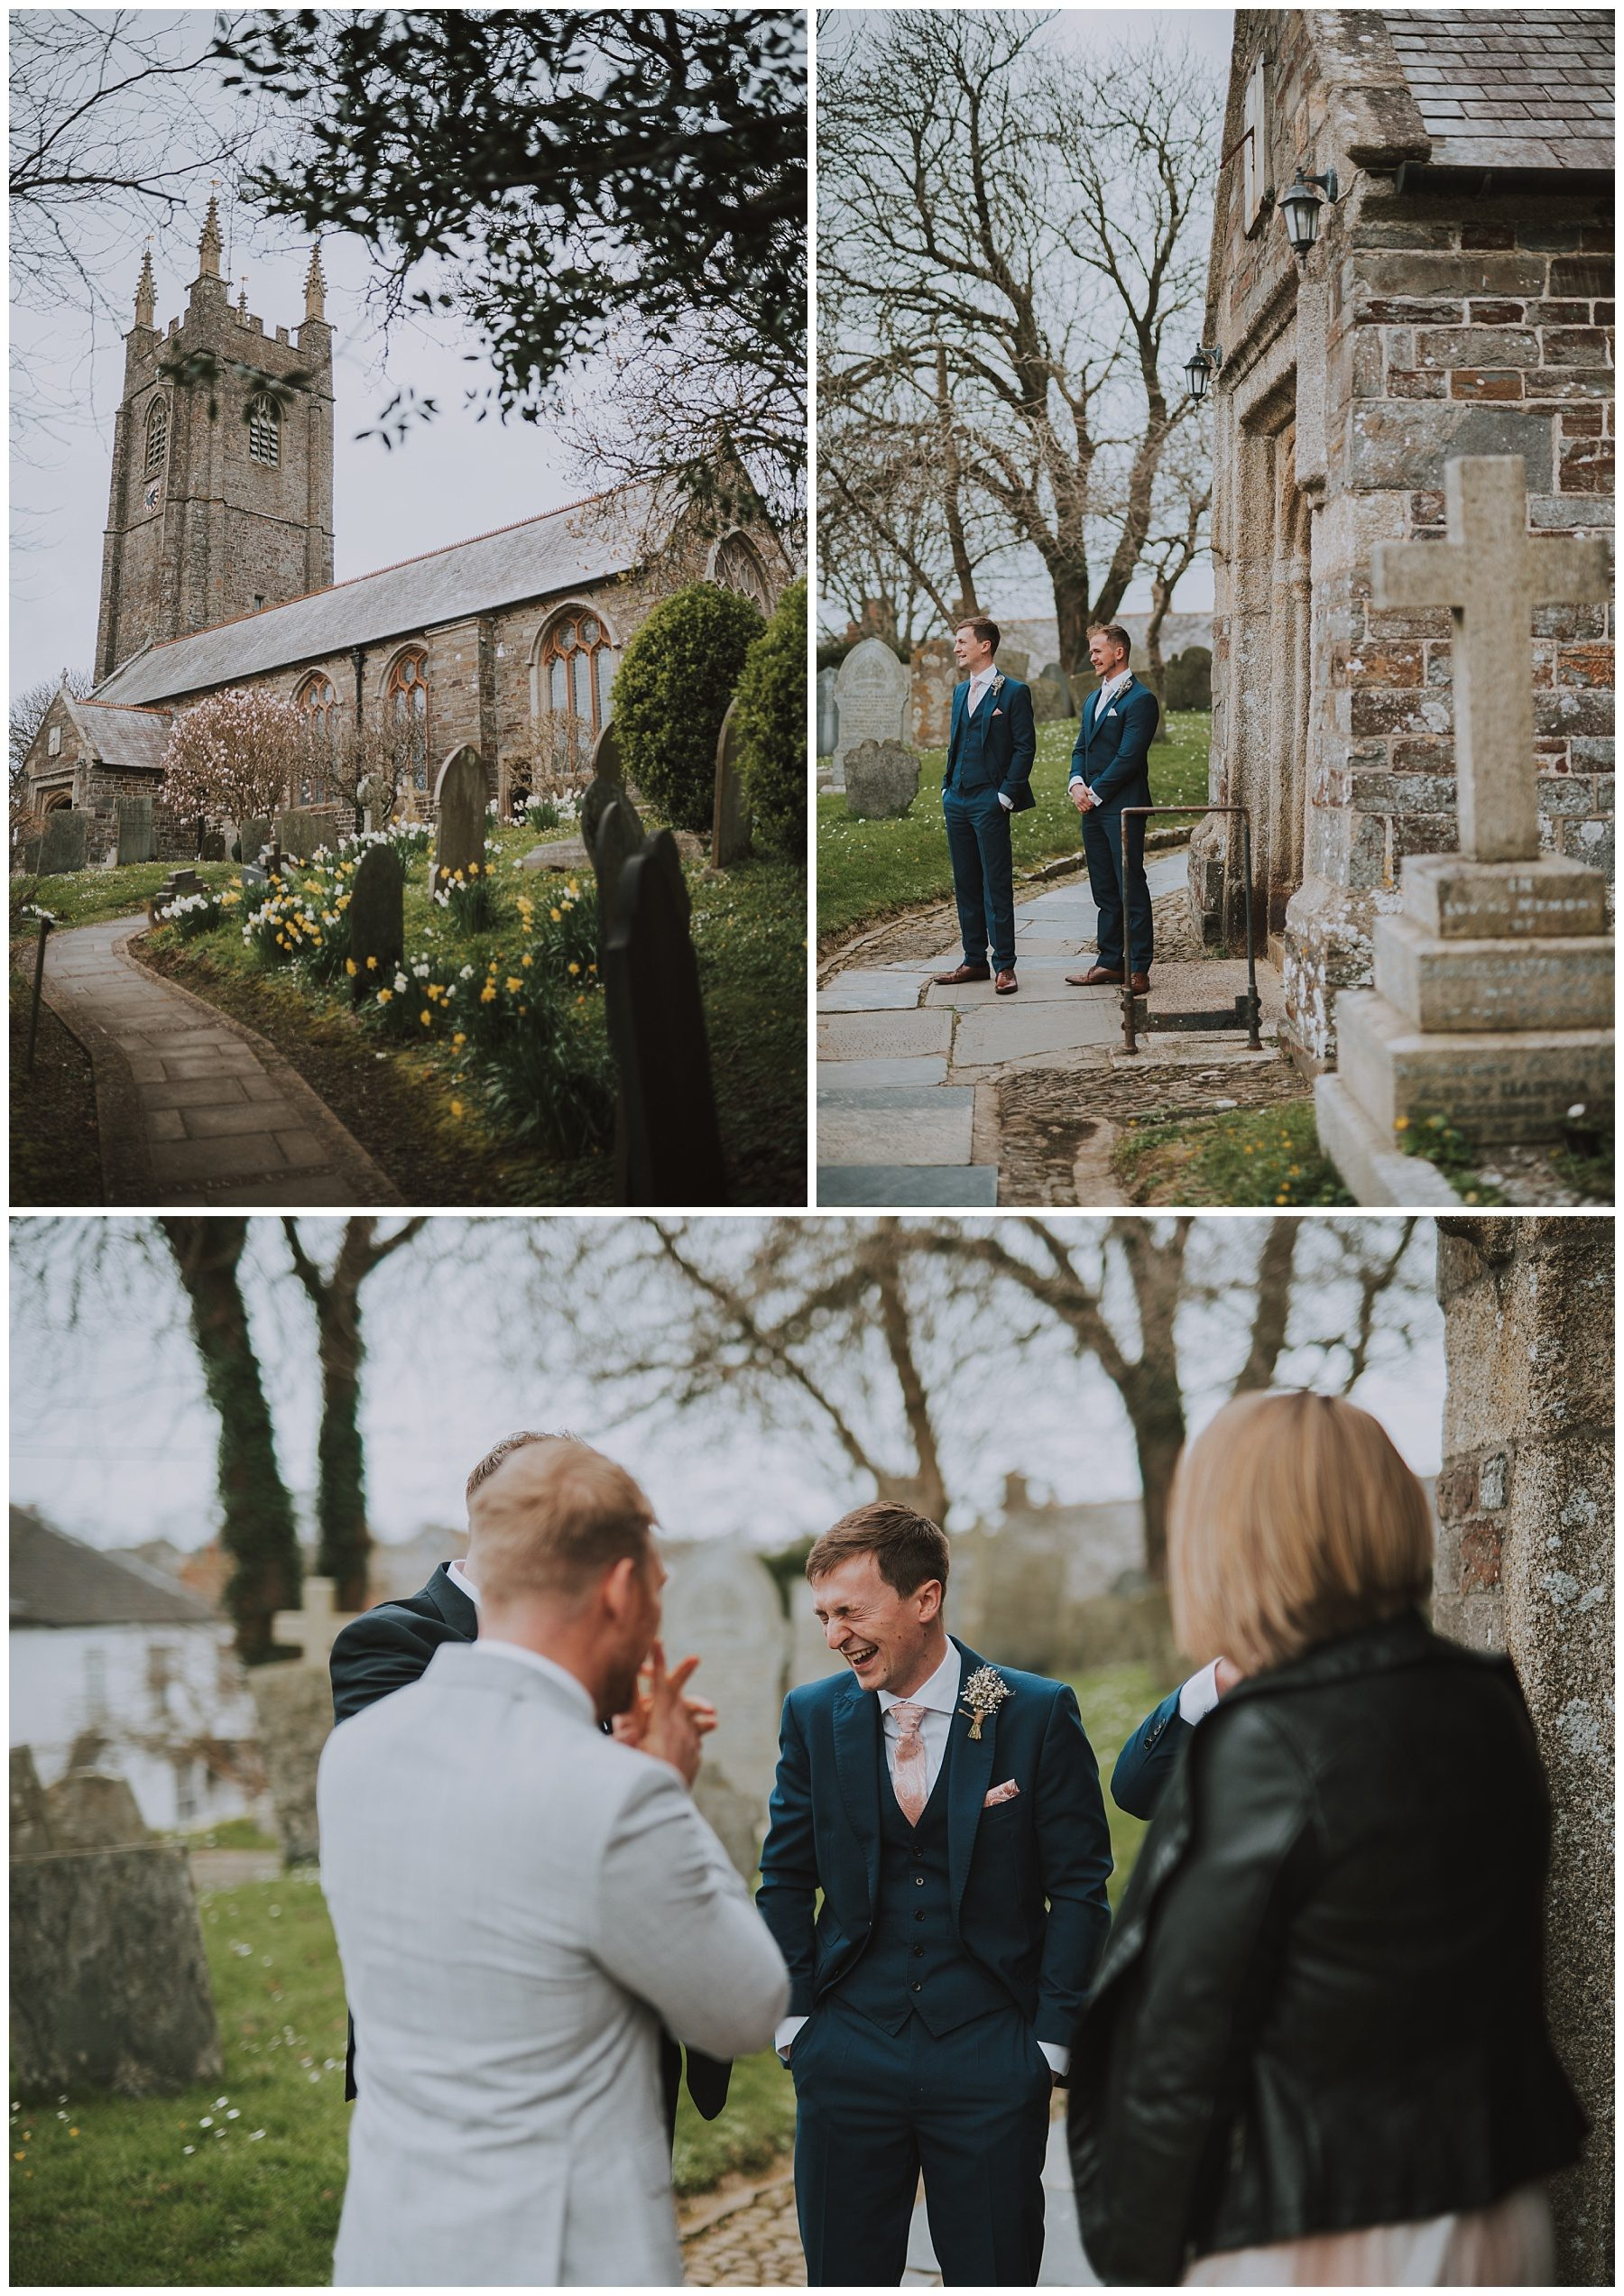 Cornish Church wedding day